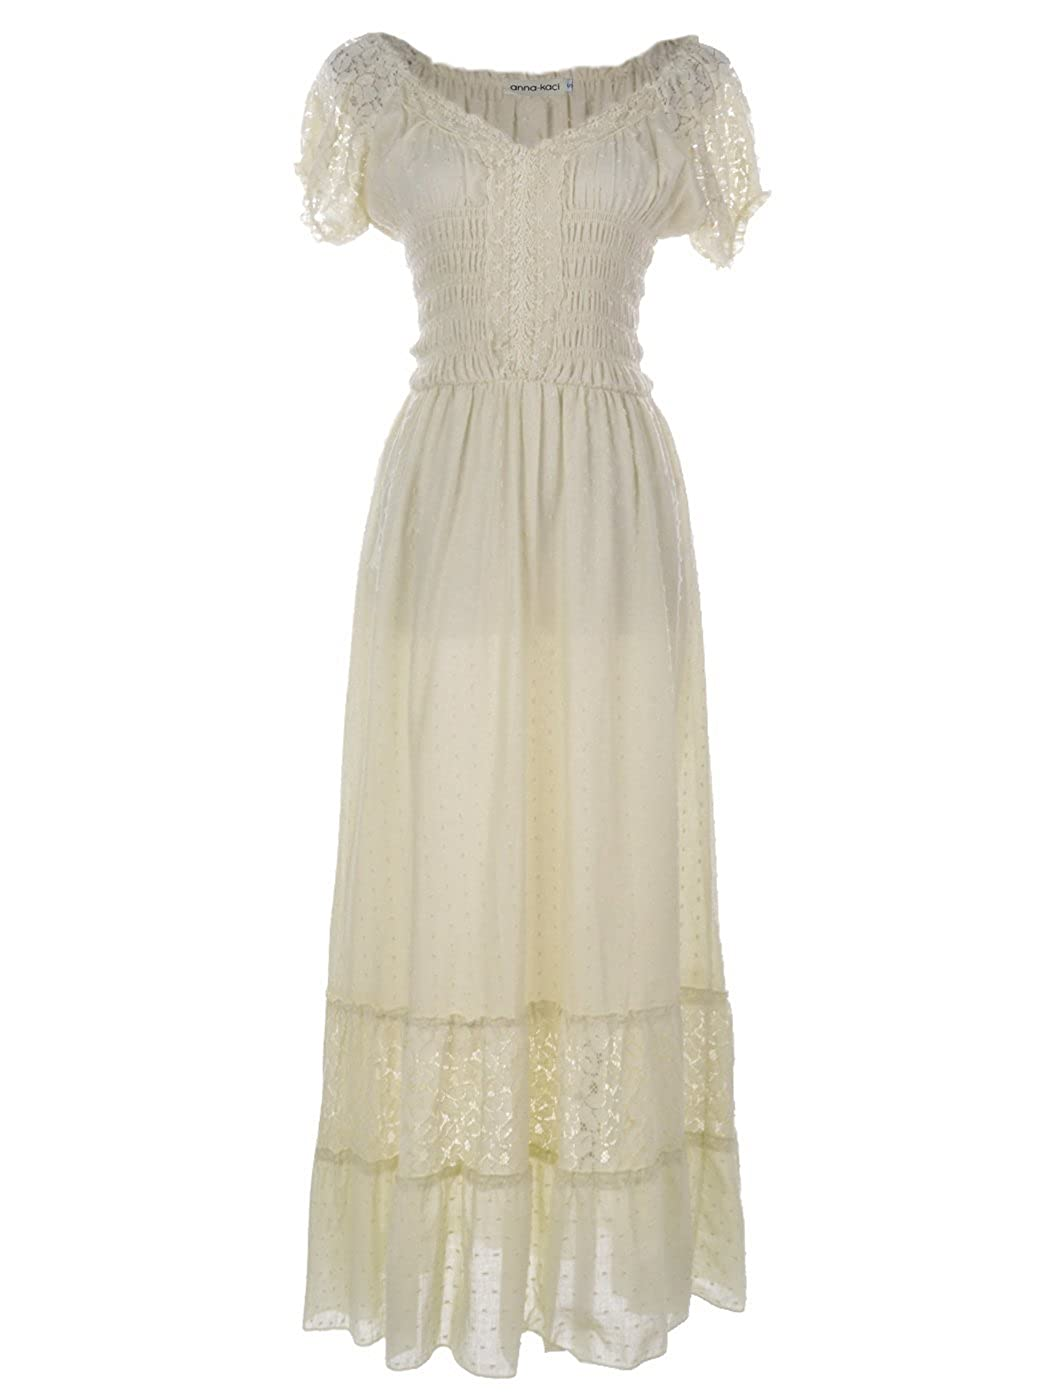 Cottagecore Dresses Aesthetic, Granny, Vintage Anna-Kaci Renaissance Peasant Maiden Boho Inspired Cap Sleeve Lace Trim Dress $39.99 AT vintagedancer.com